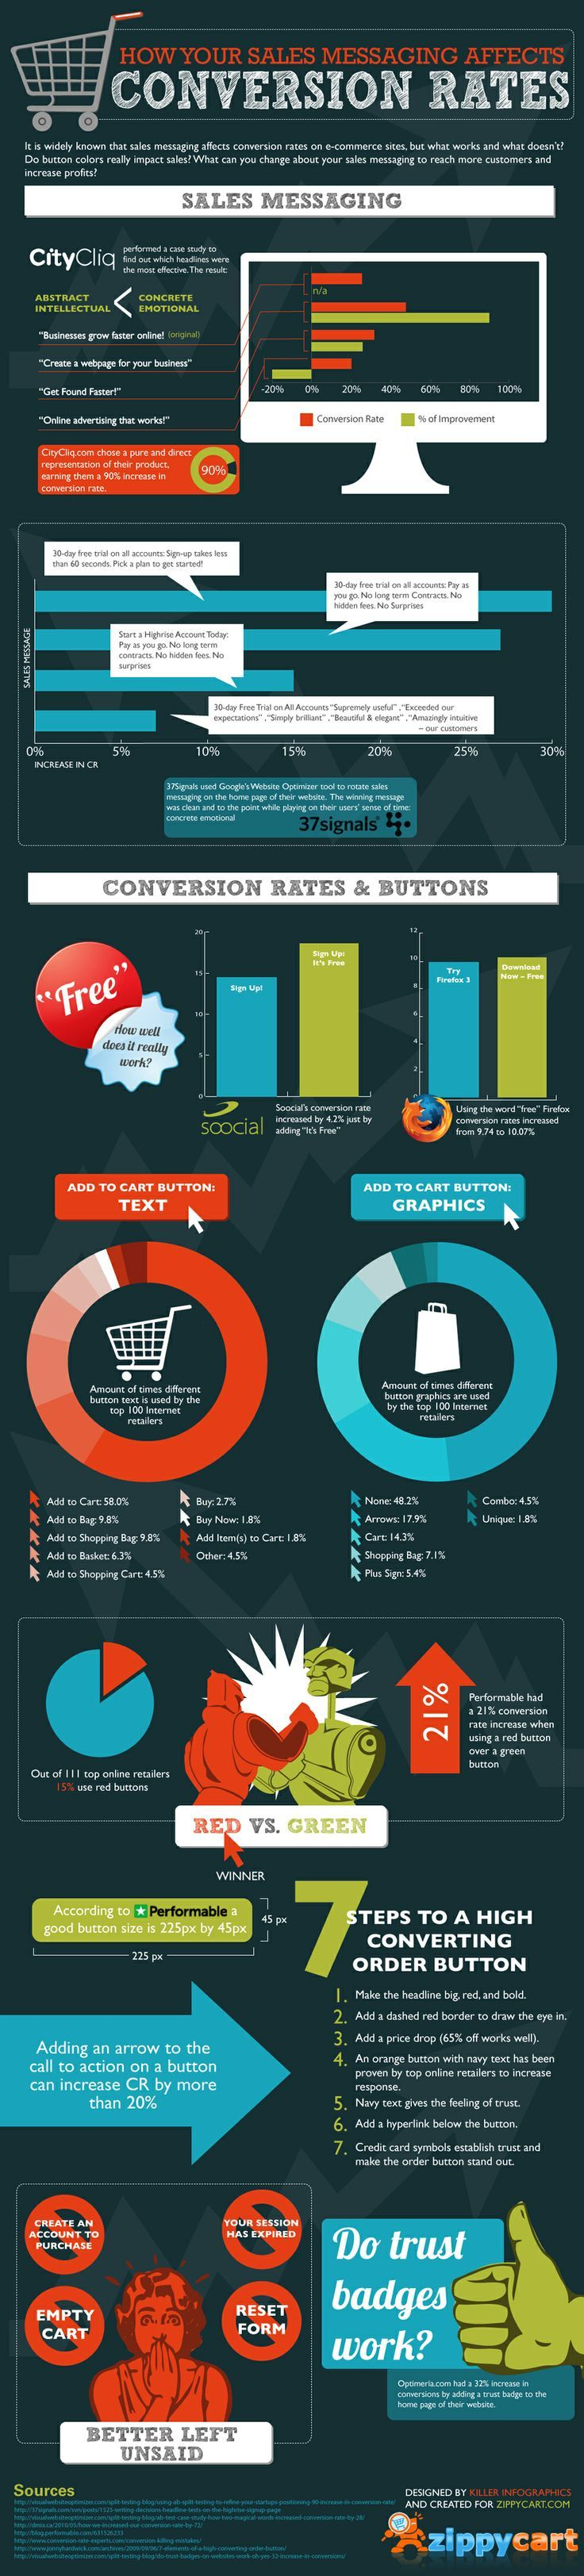 Infographic: How Your Sales Messaging Affects Conversion Rates